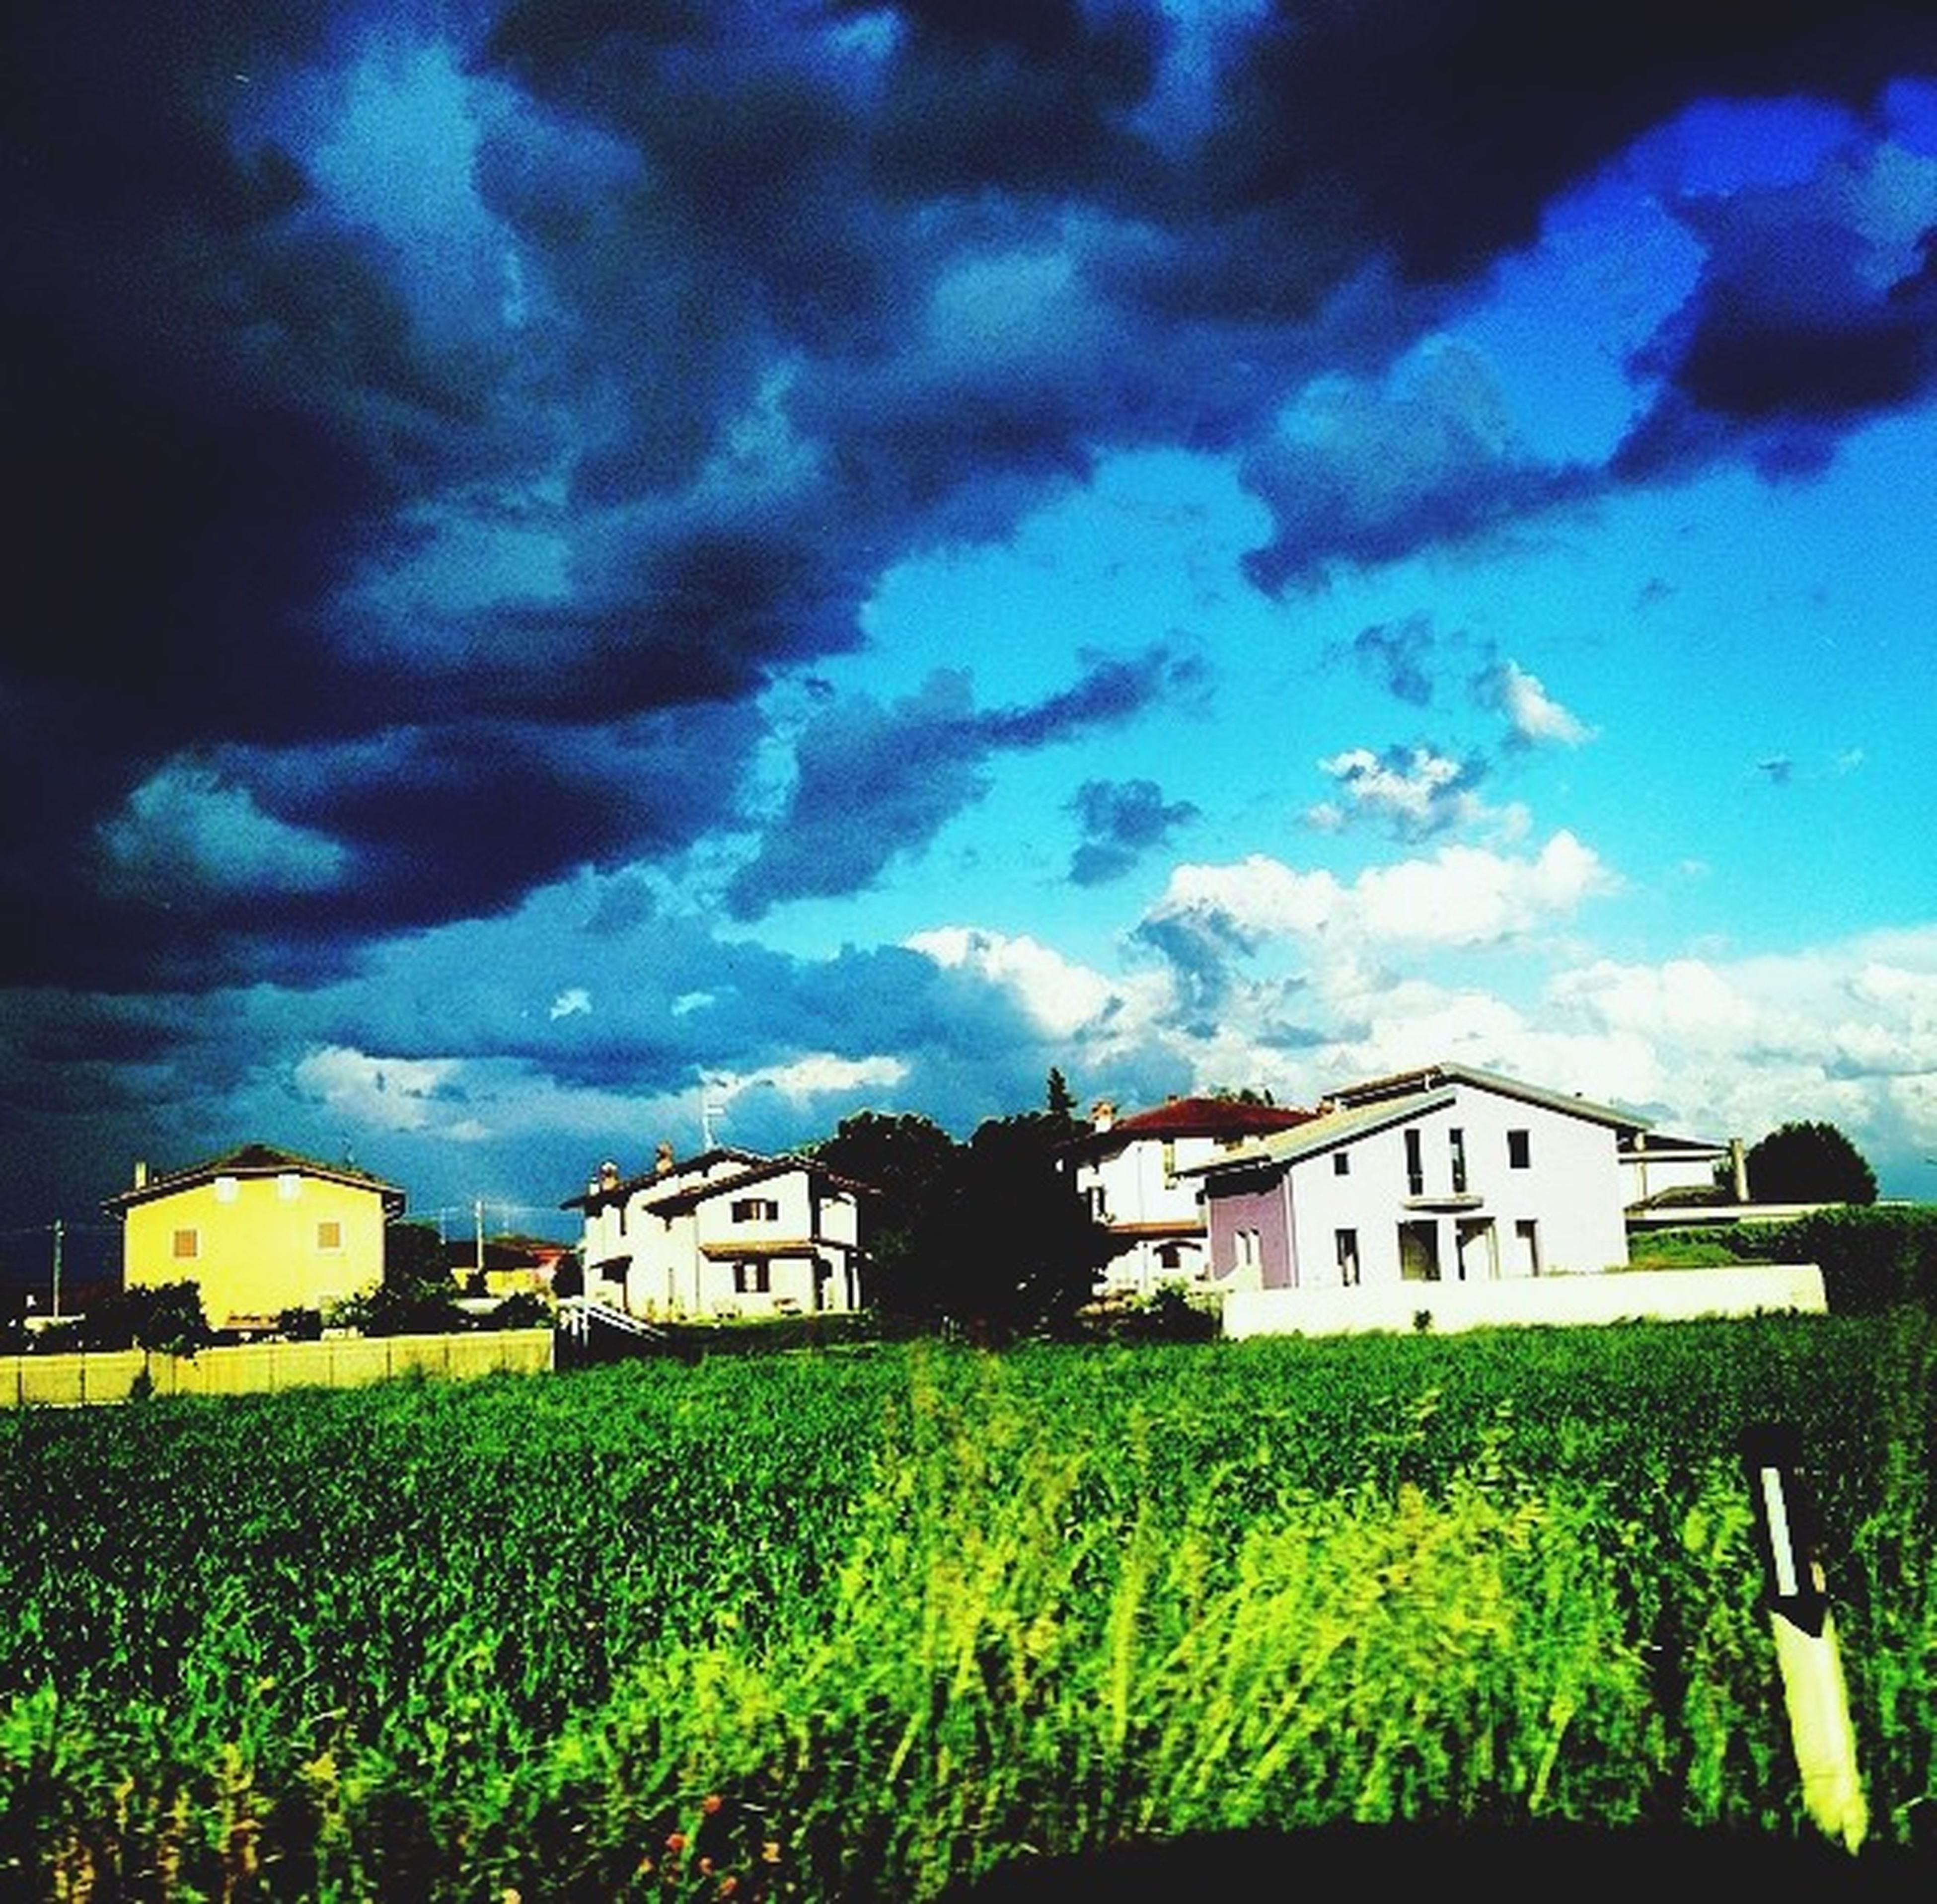 building exterior, architecture, grass, sky, built structure, field, house, cloud - sky, green color, landscape, cloudy, nature, grassy, rural scene, cloud, beauty in nature, residential structure, growth, blue, plant